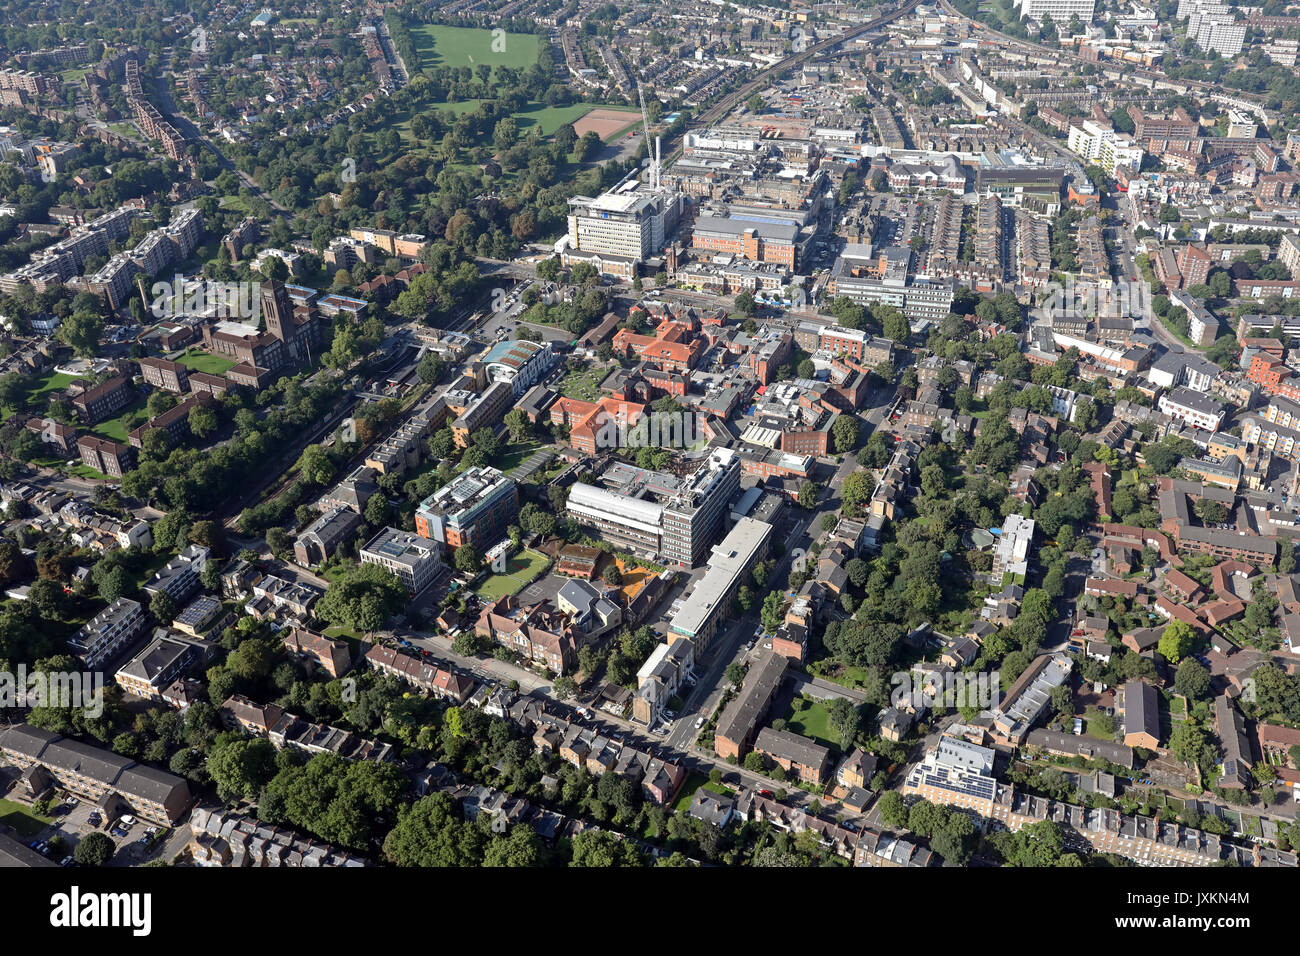 aerial view of  Kings College Hospital & University, London SE5 - Stock Image